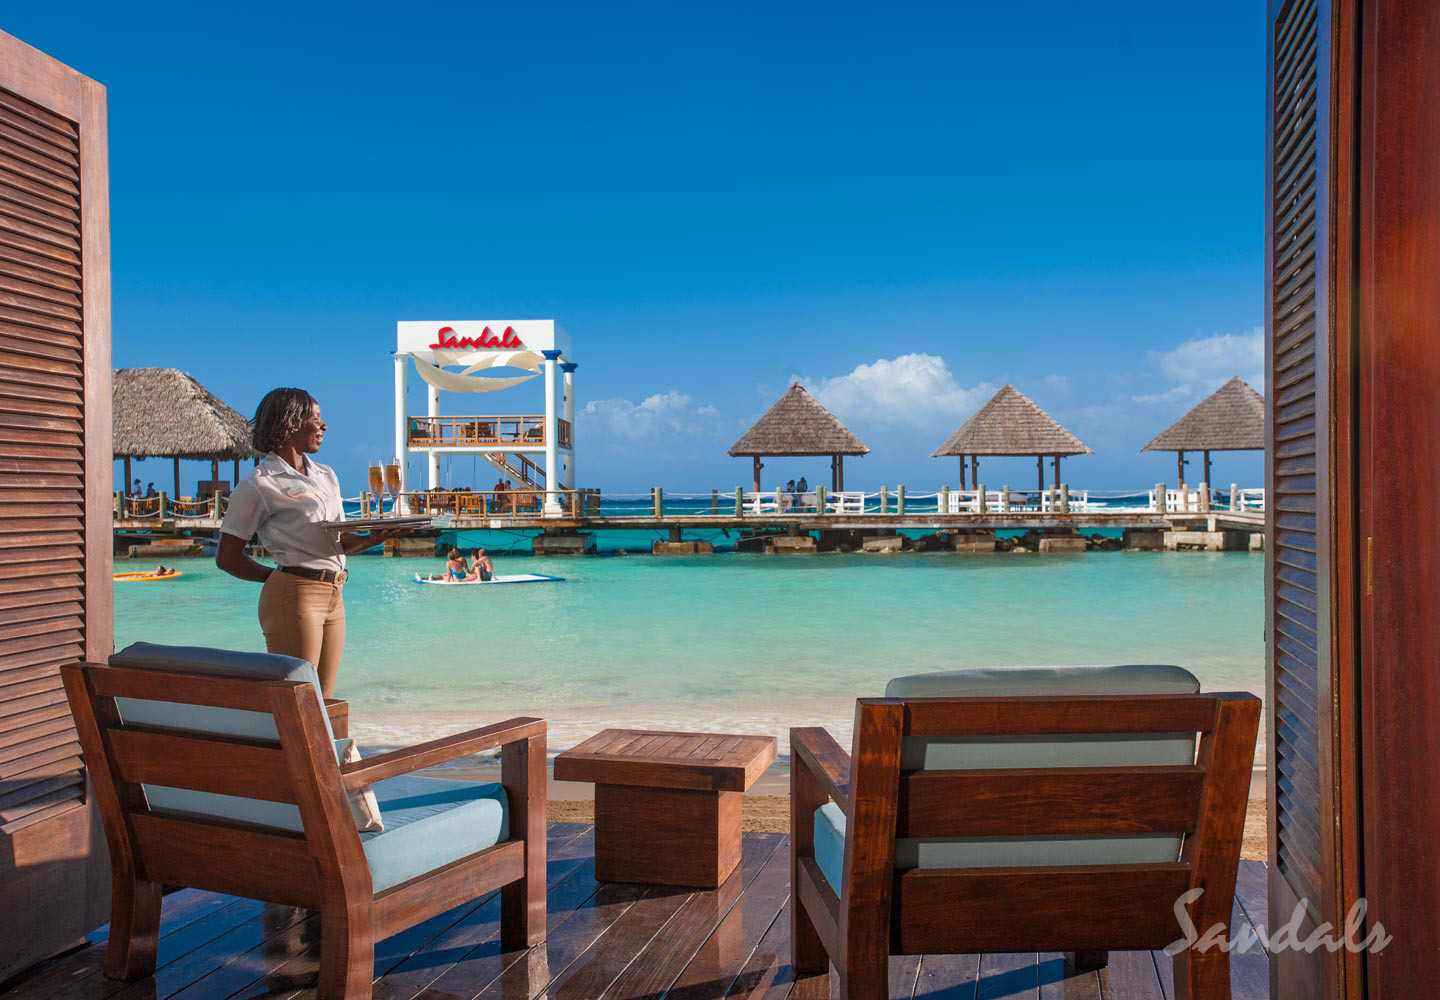 Travel Agency All-Inclusive Resort Sandals Ochi 157